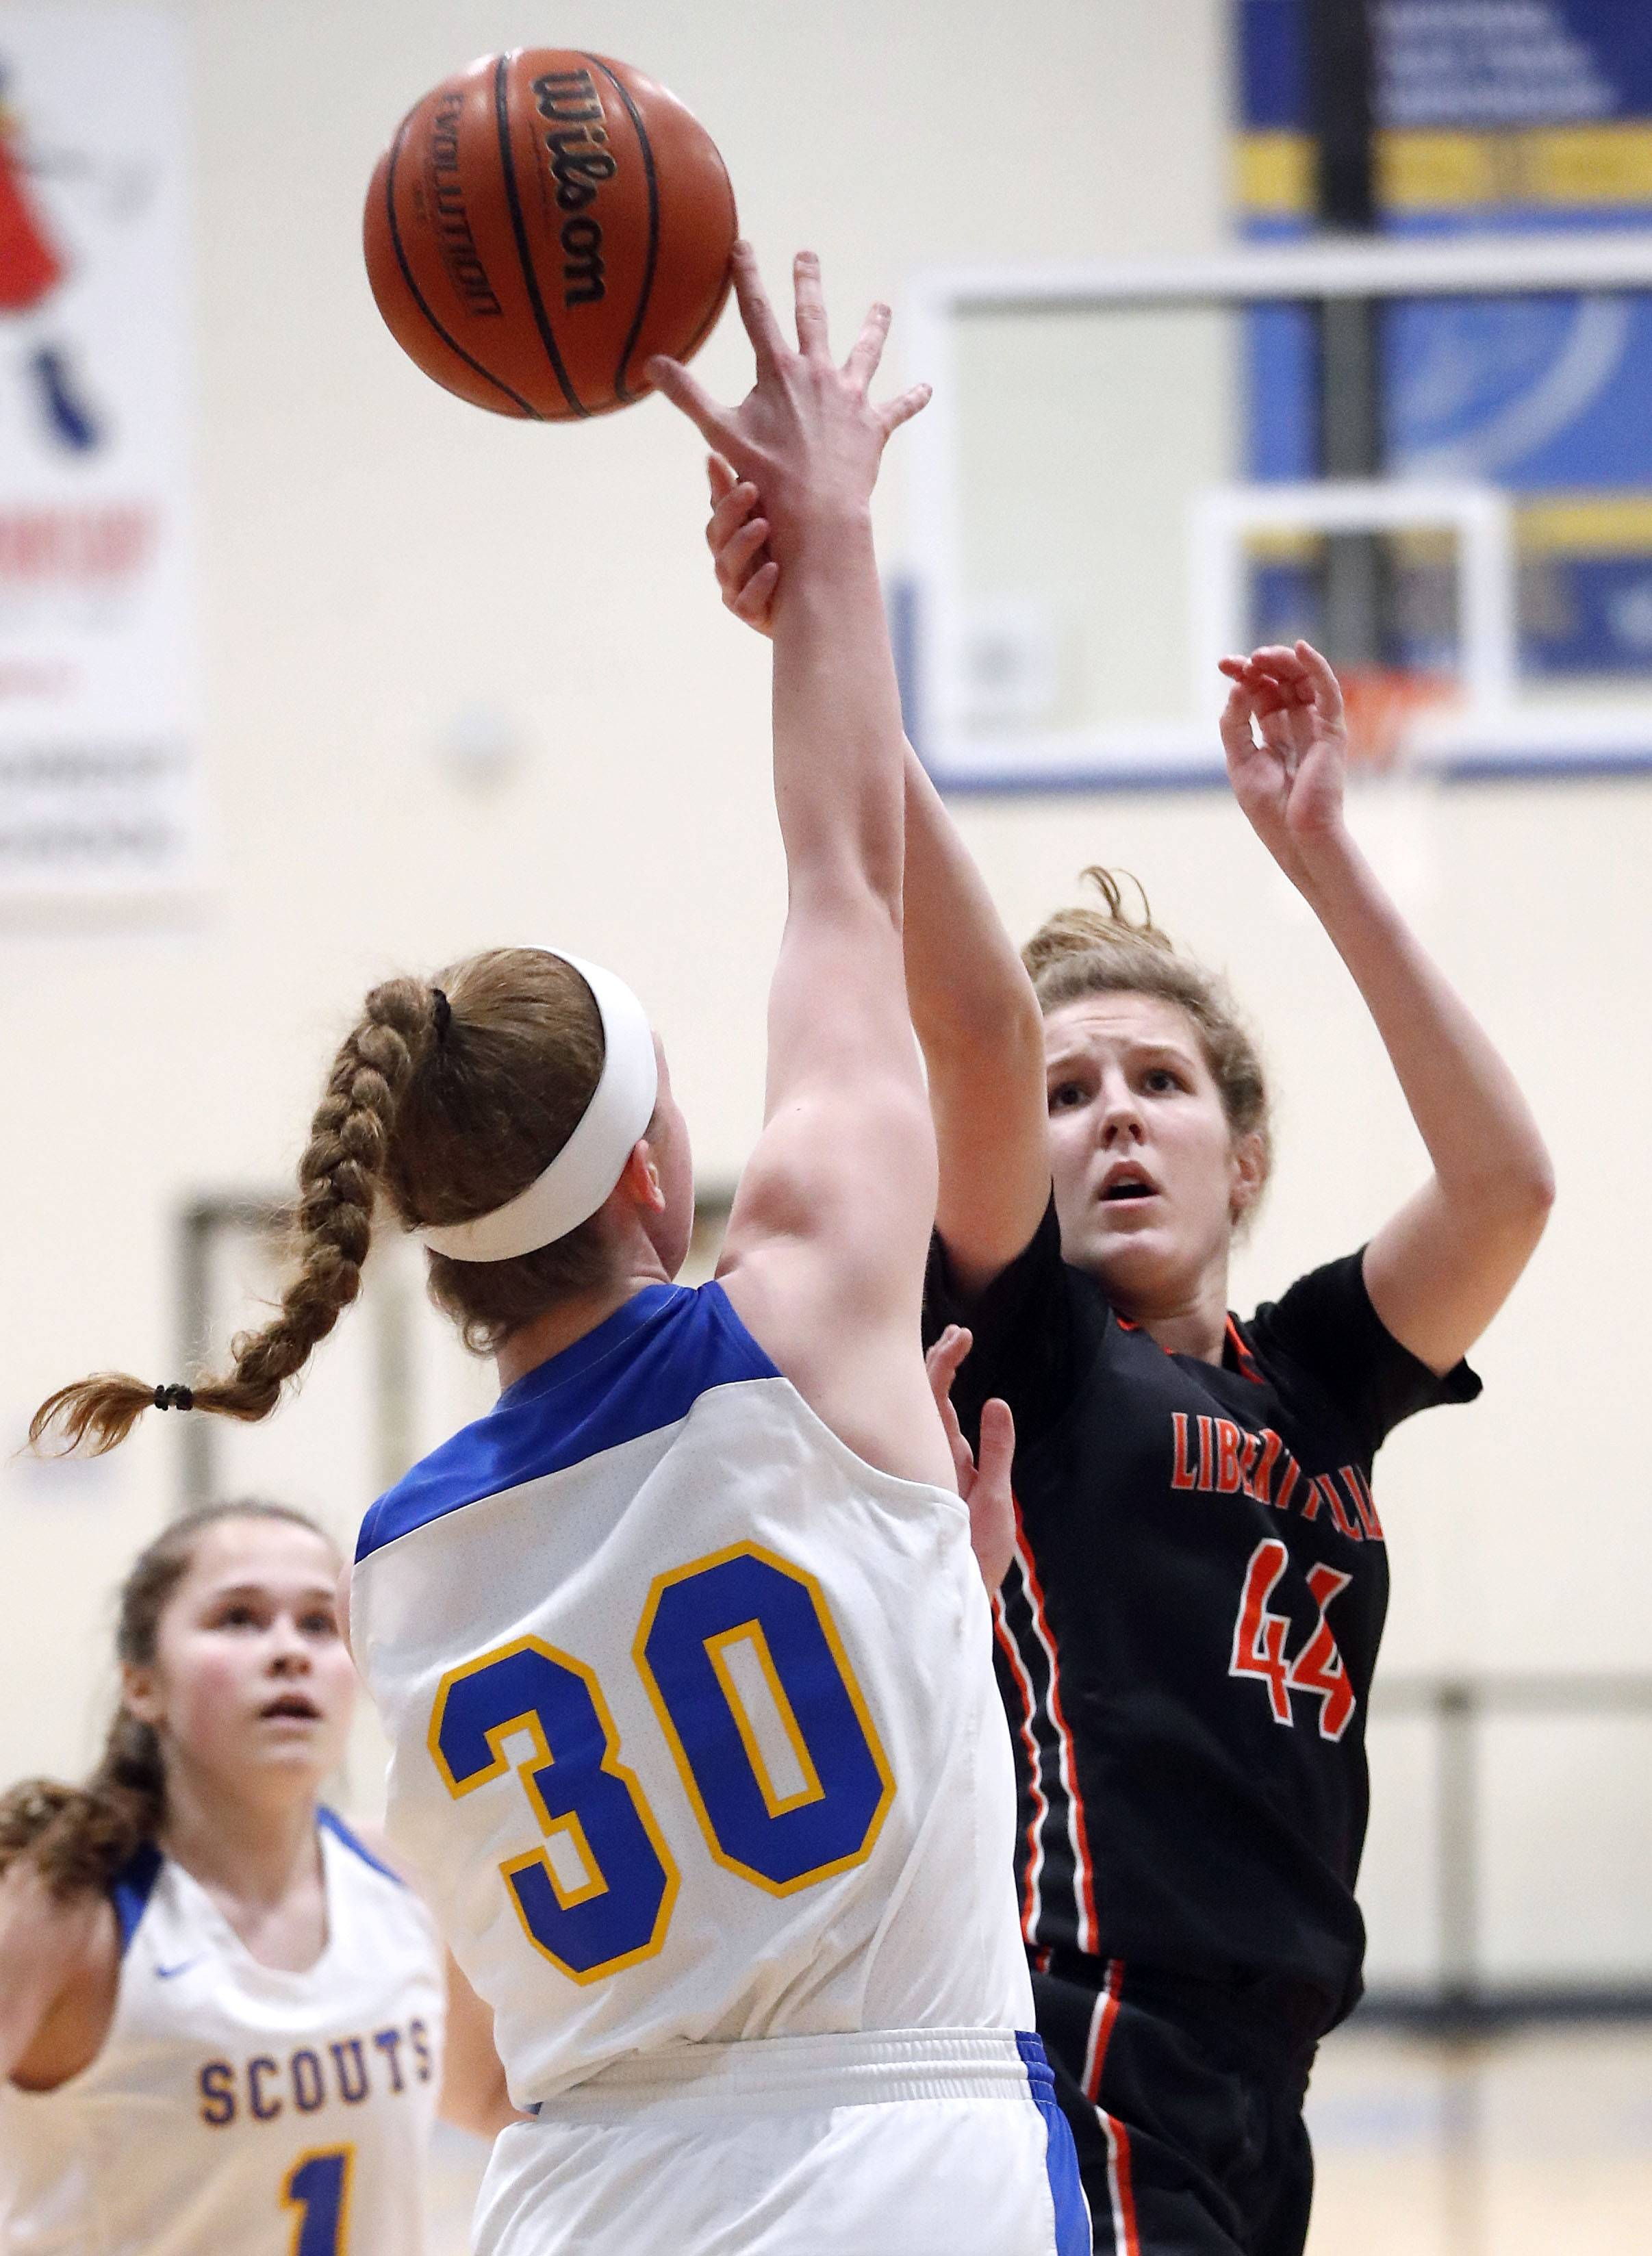 Libertyville's Lauren Huber (44) shoots over Lake Forest's Ellie Pearson during their game Wednesday night in Lake Forest.